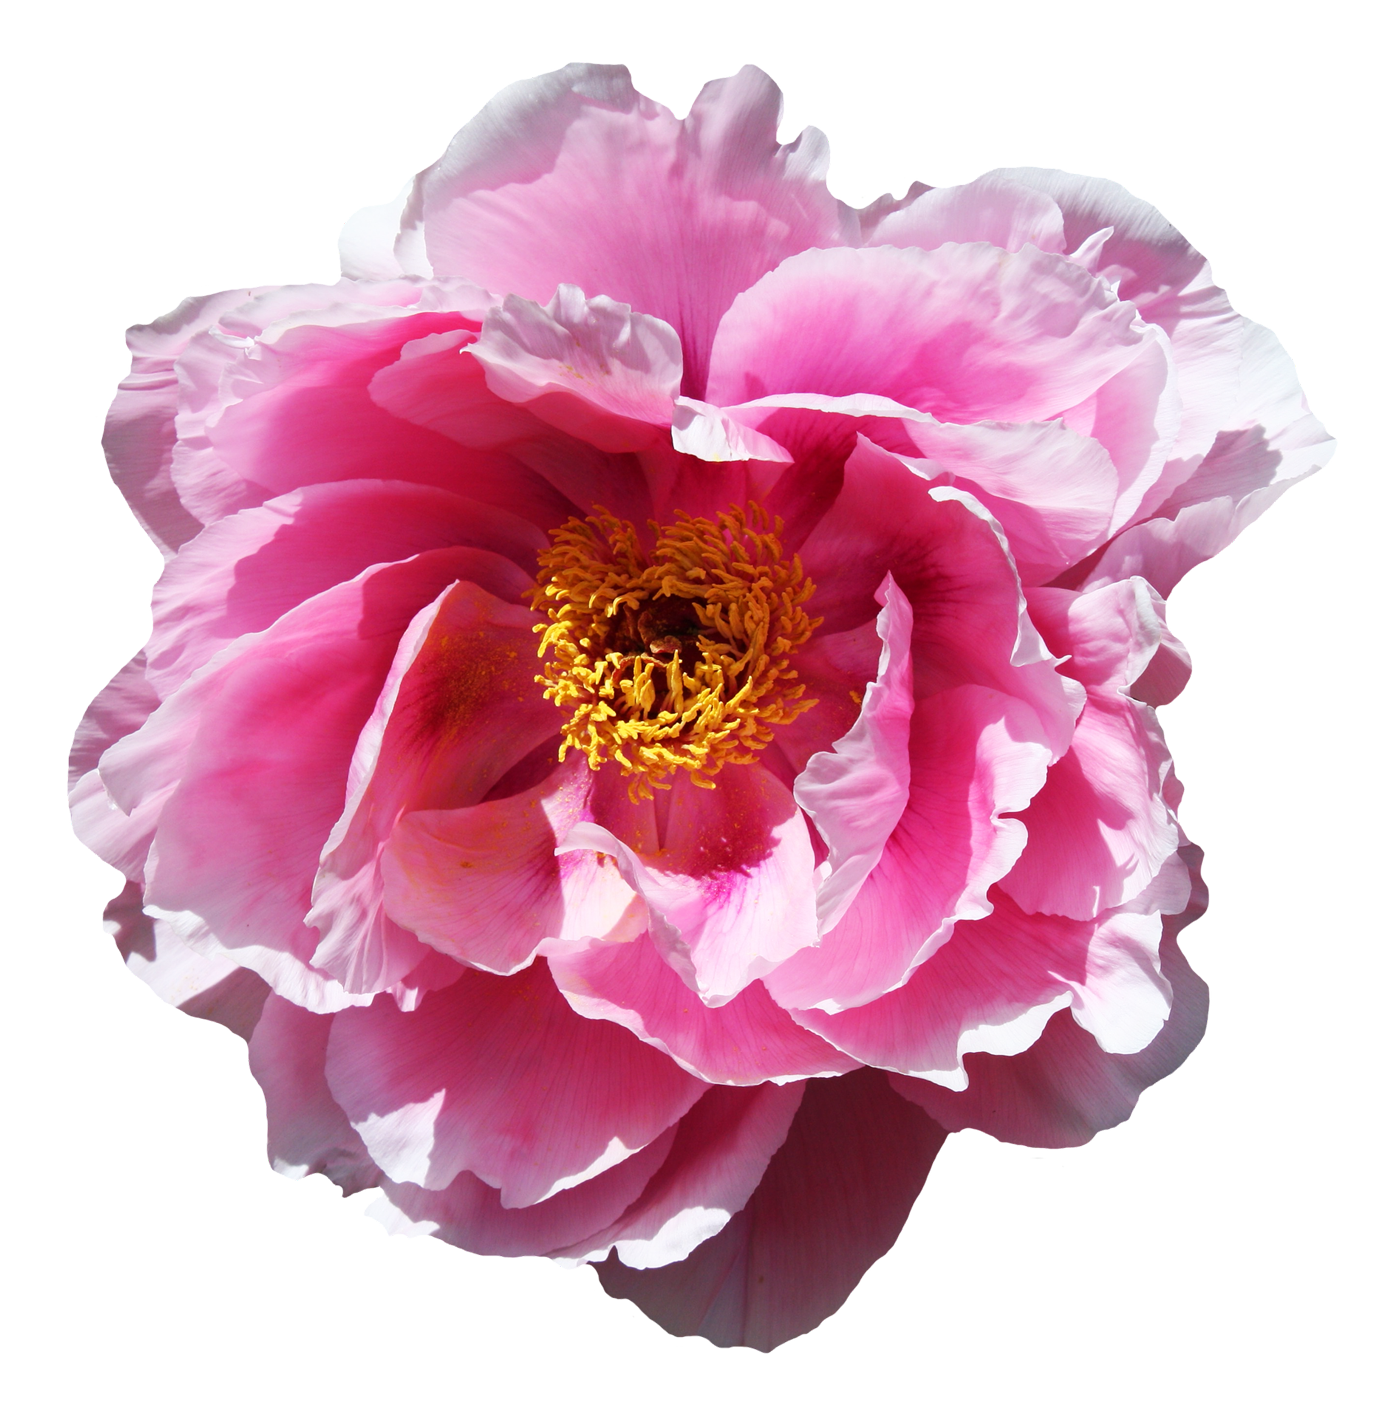 Flower .png. Rose png images pngpix